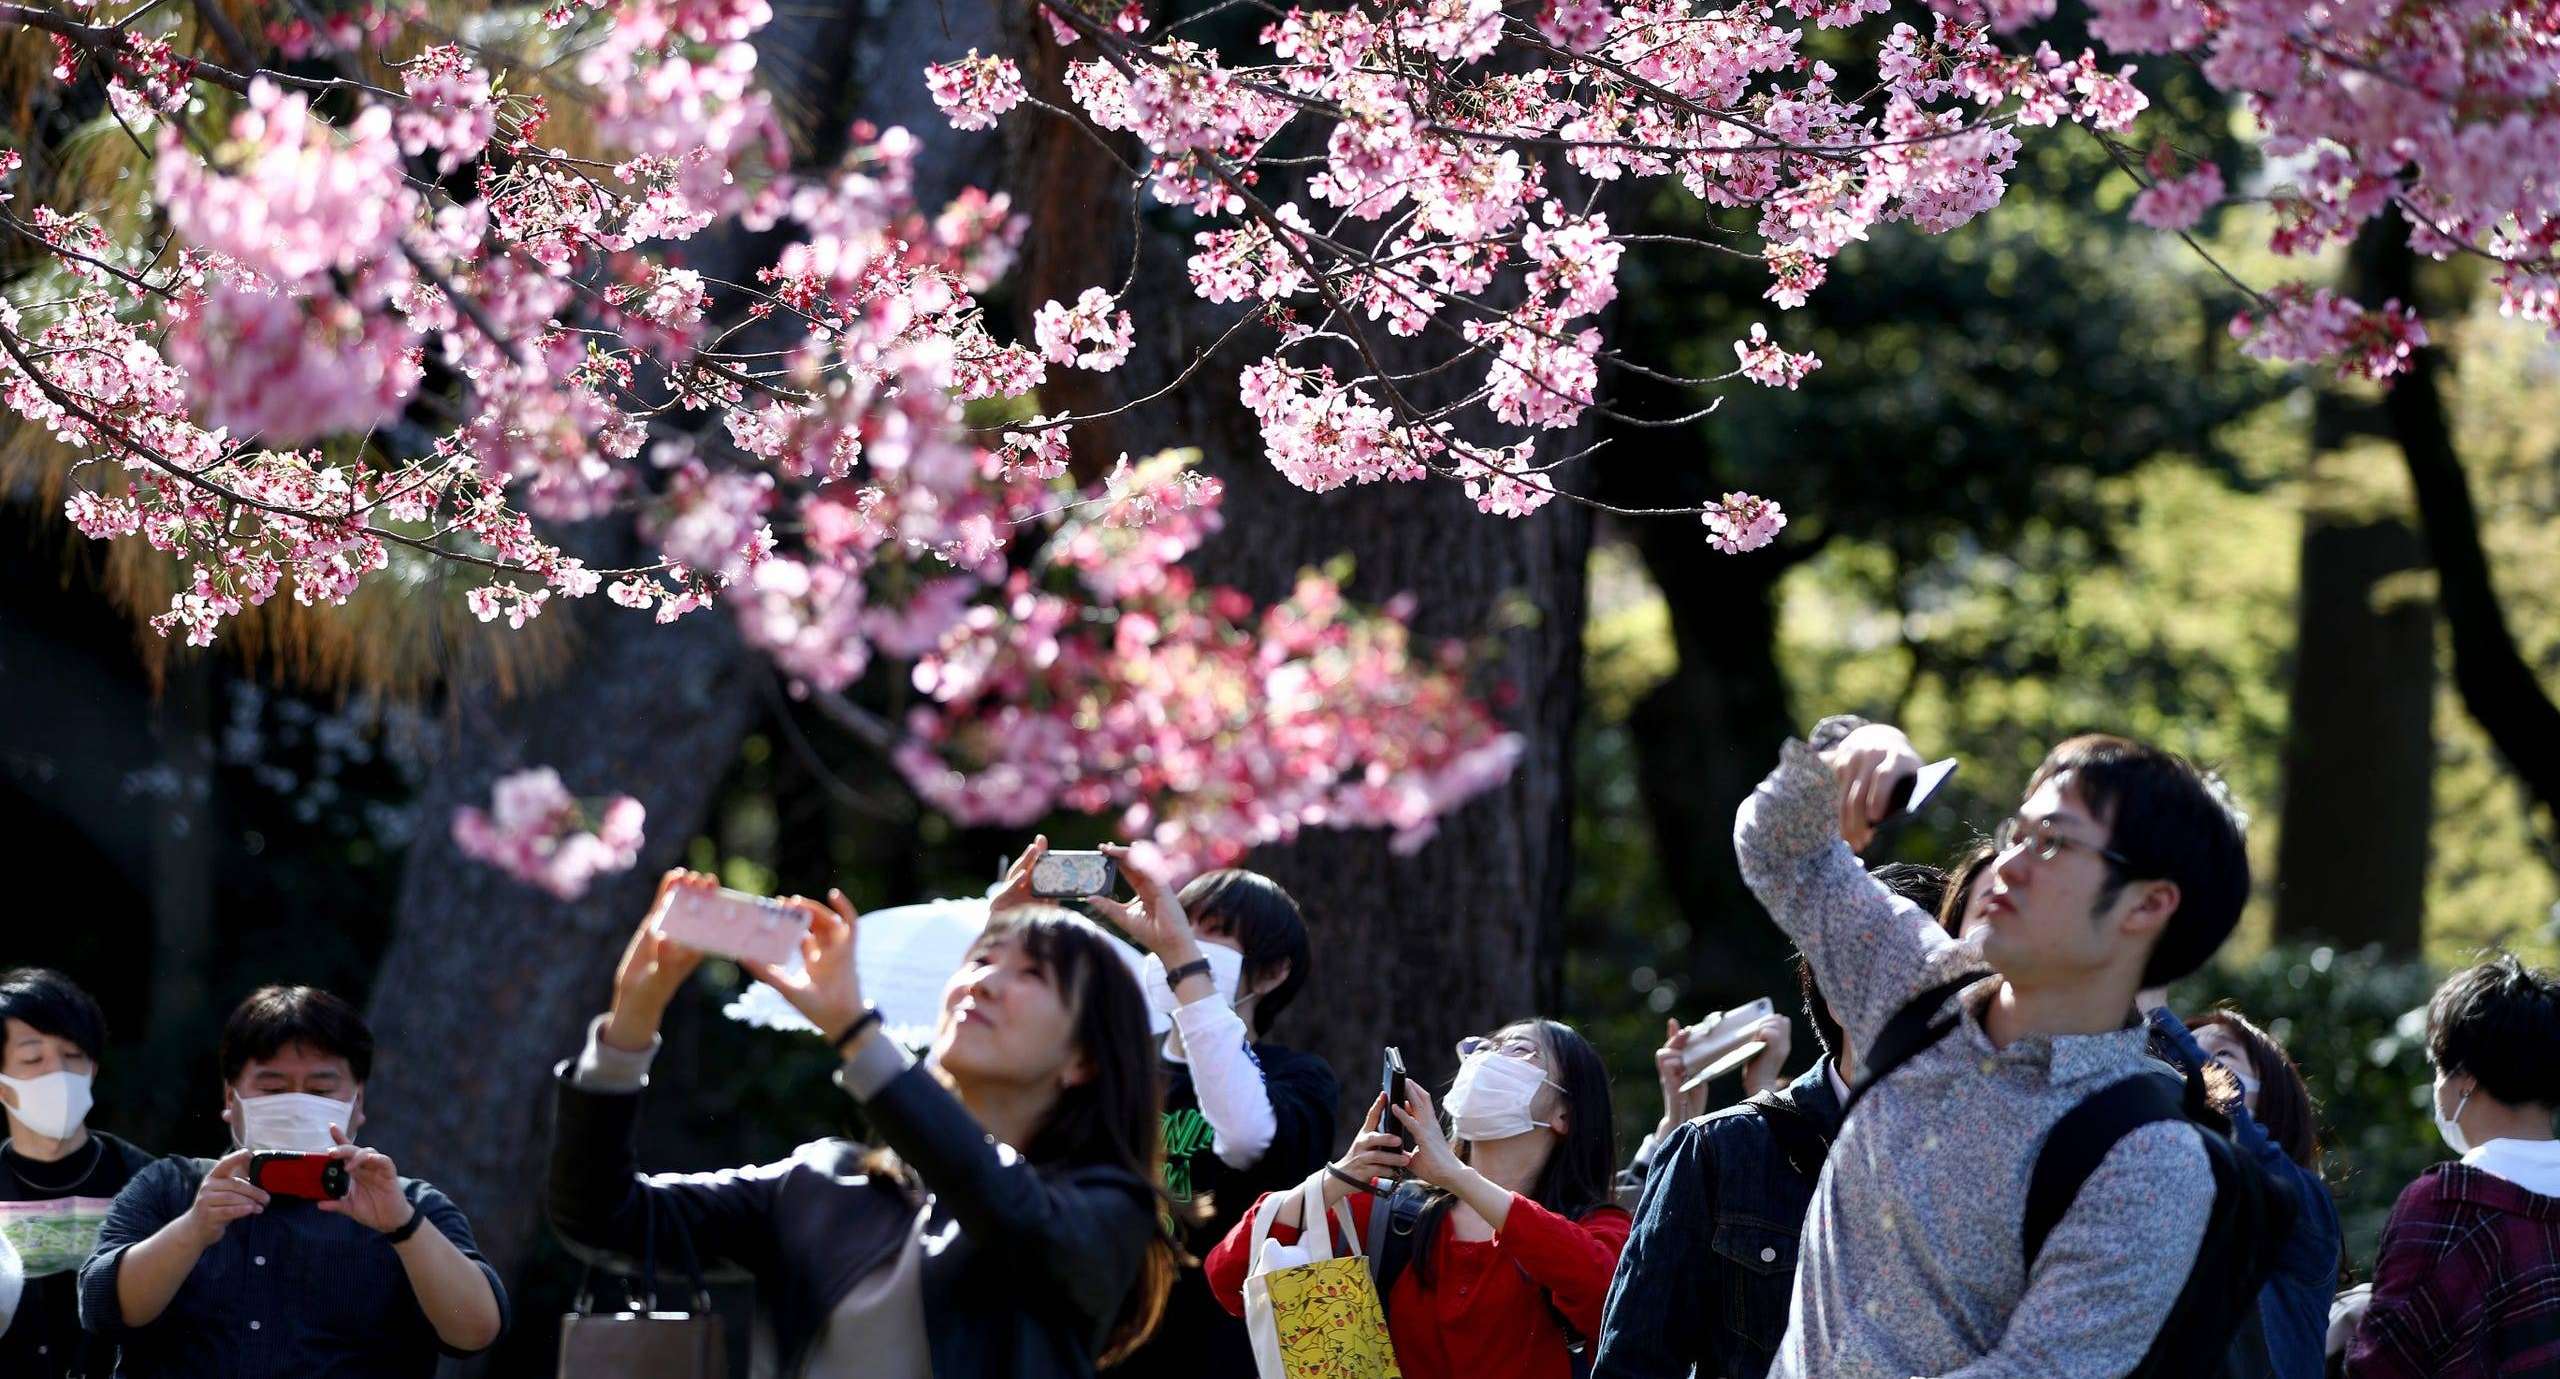 USA Today Cherry Blossoms in Japan March 2020